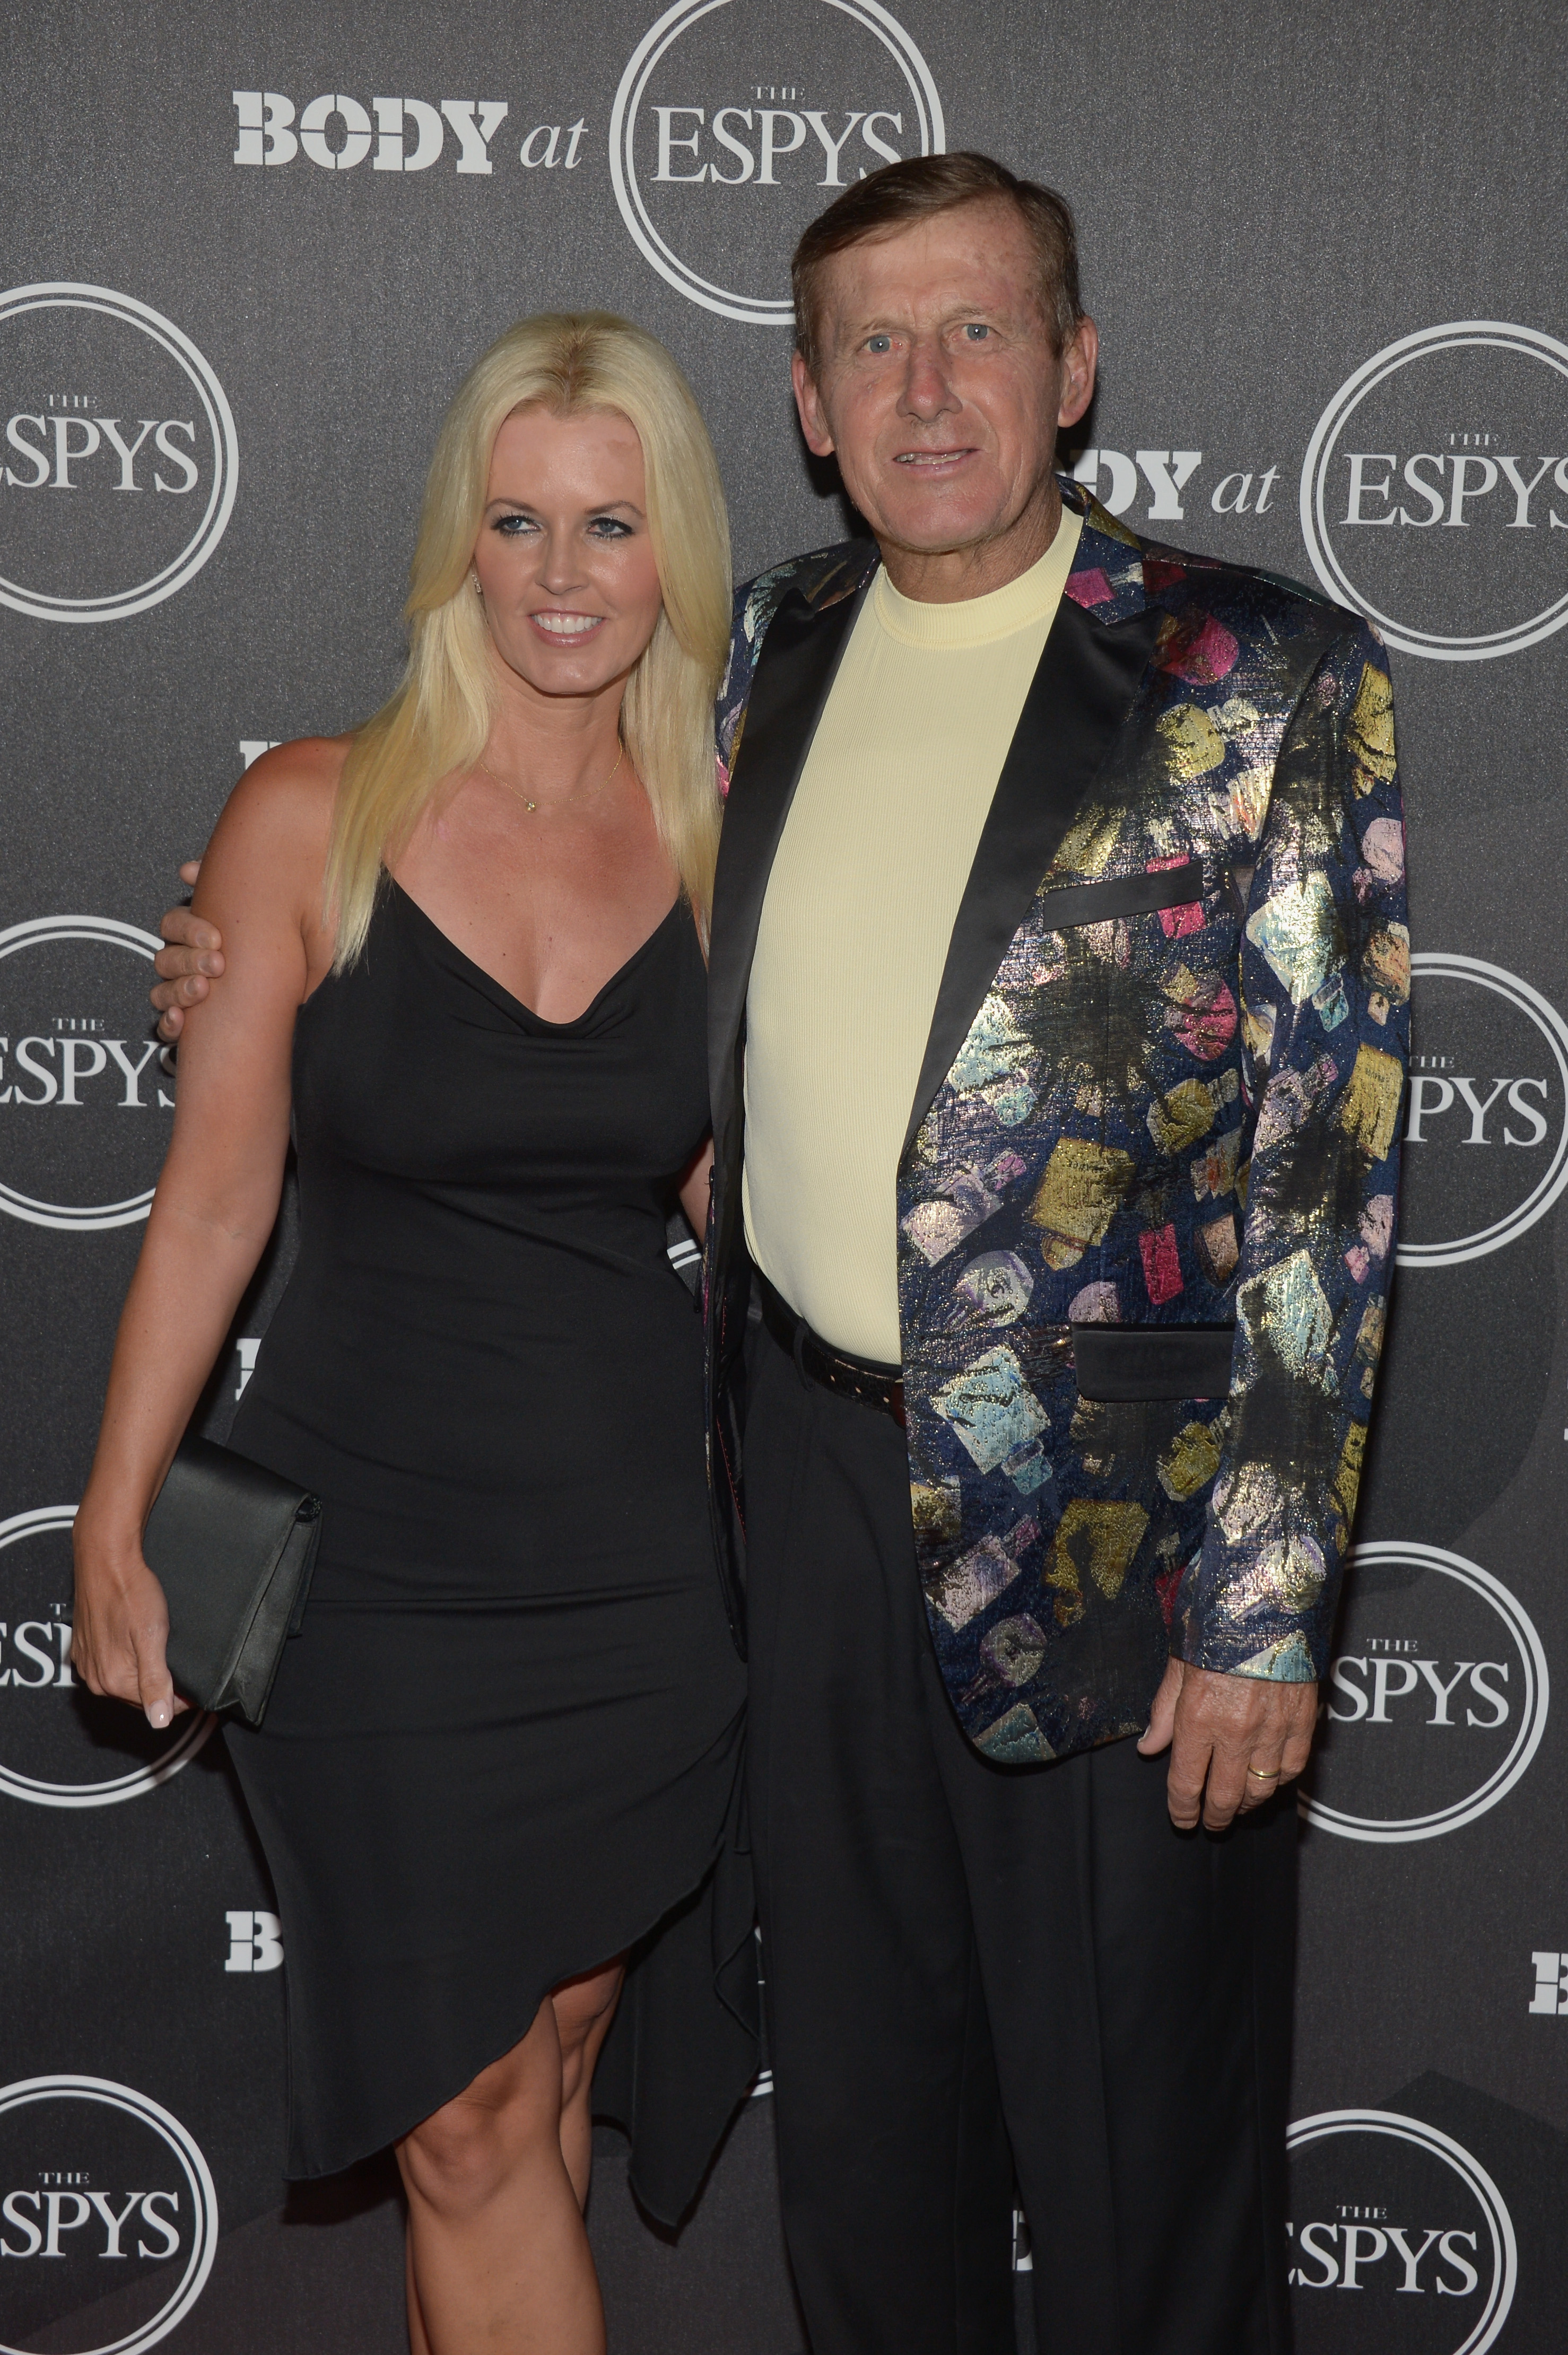 Craig Stacy Sager Wife Photos Pictures